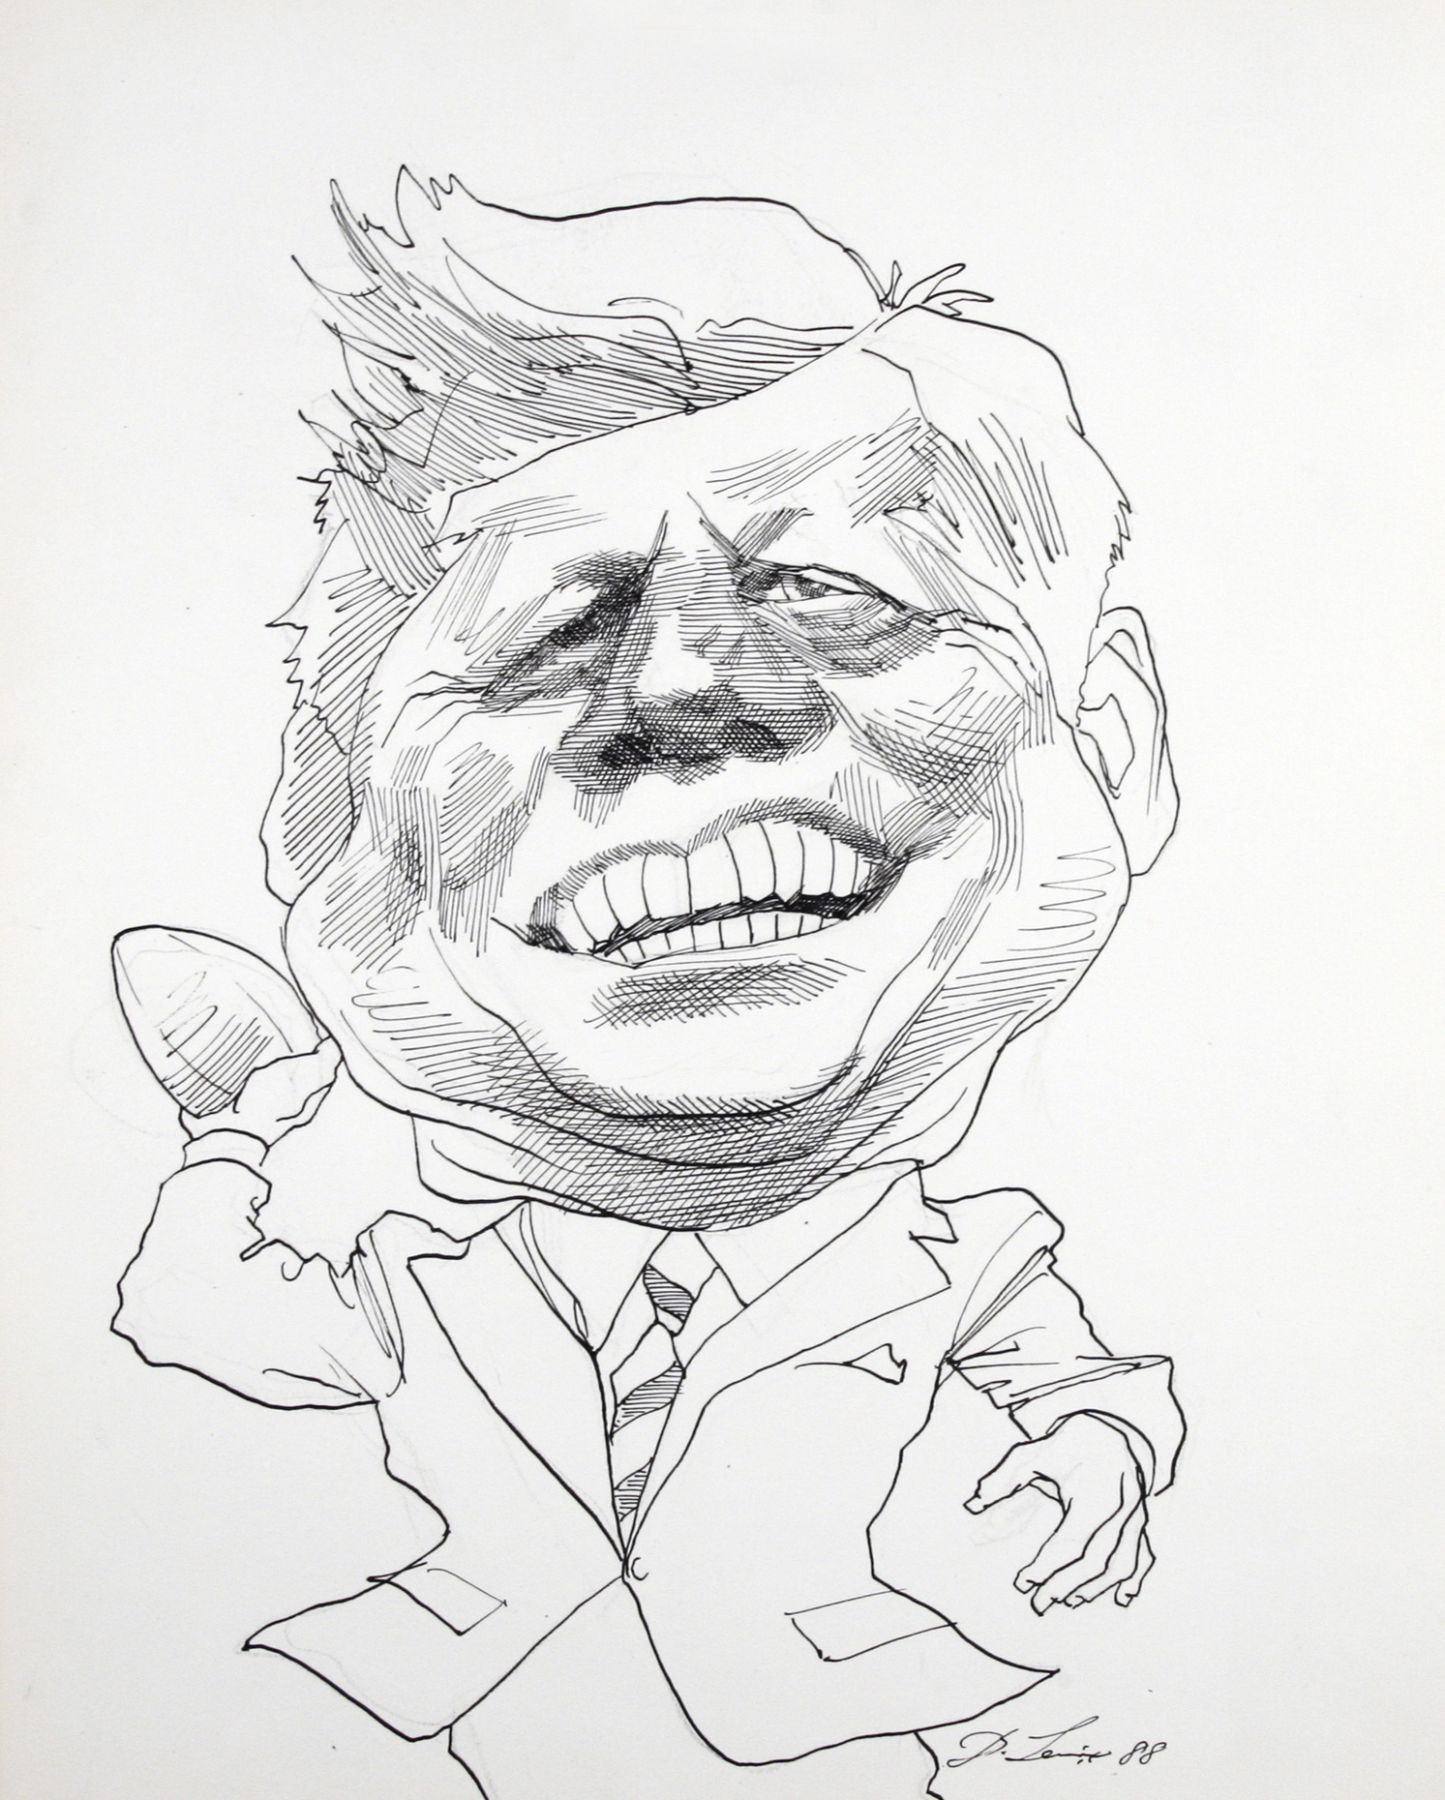 david levine, JFK, 1988, ink on paper, 13 x 11 inches